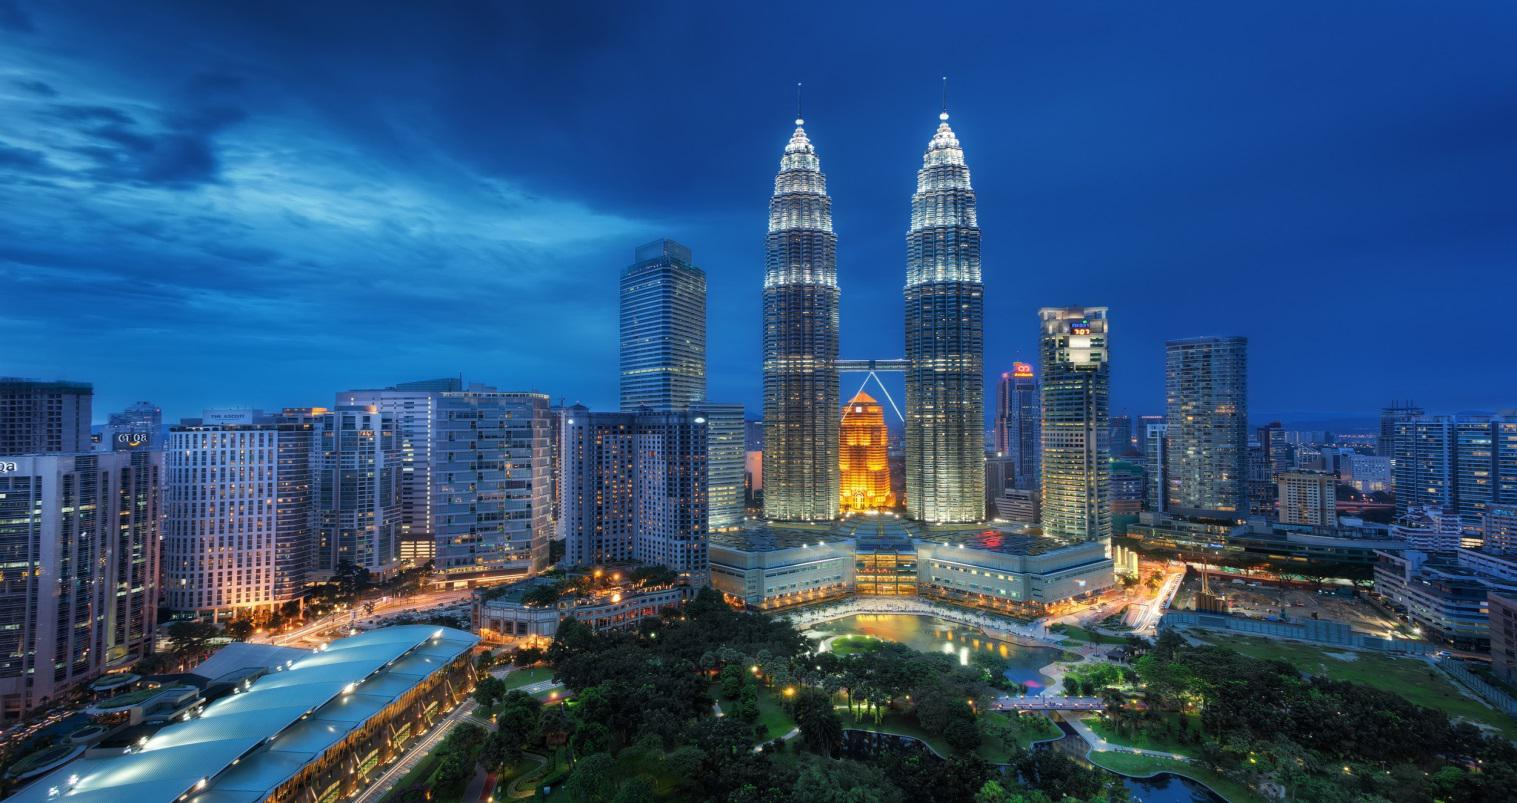 Planning to go out for vacations to spend time with family? Let's have a trip to the top places in Malaysia!